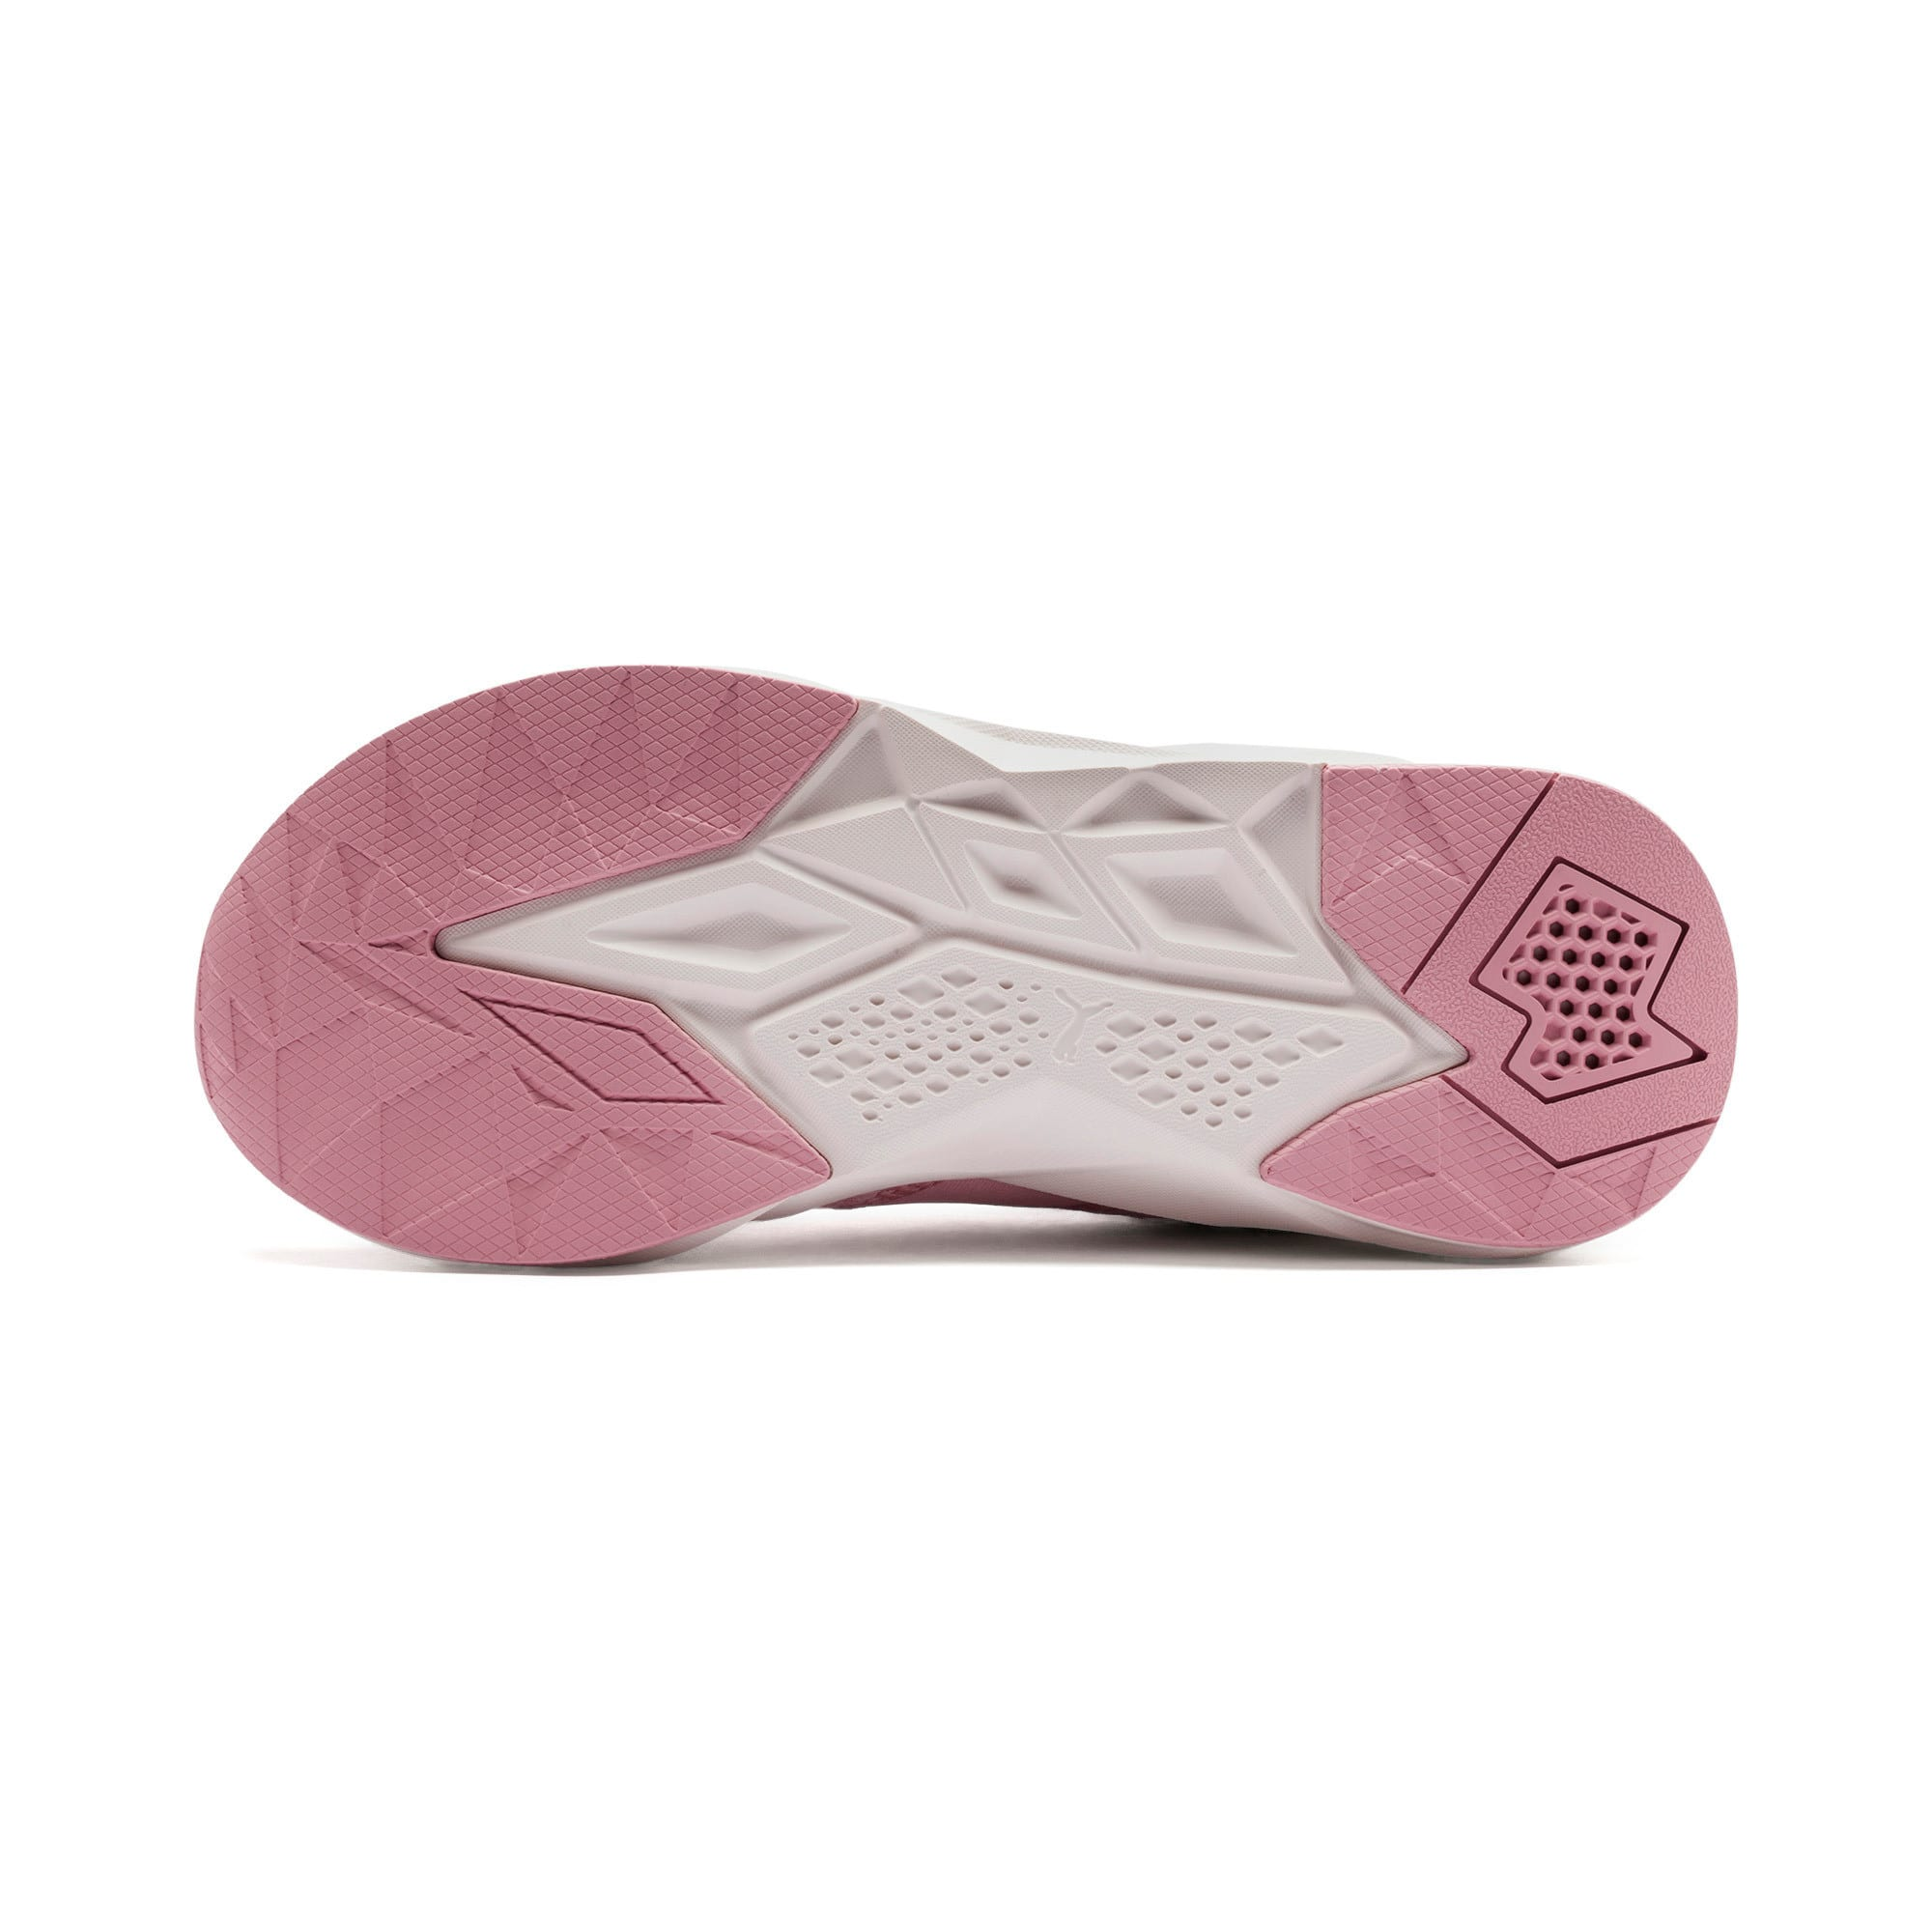 Thumbnail 6 of CELL Plasmic Women's Trainers, Bridal Rose-Pastel Parchment, medium-IND